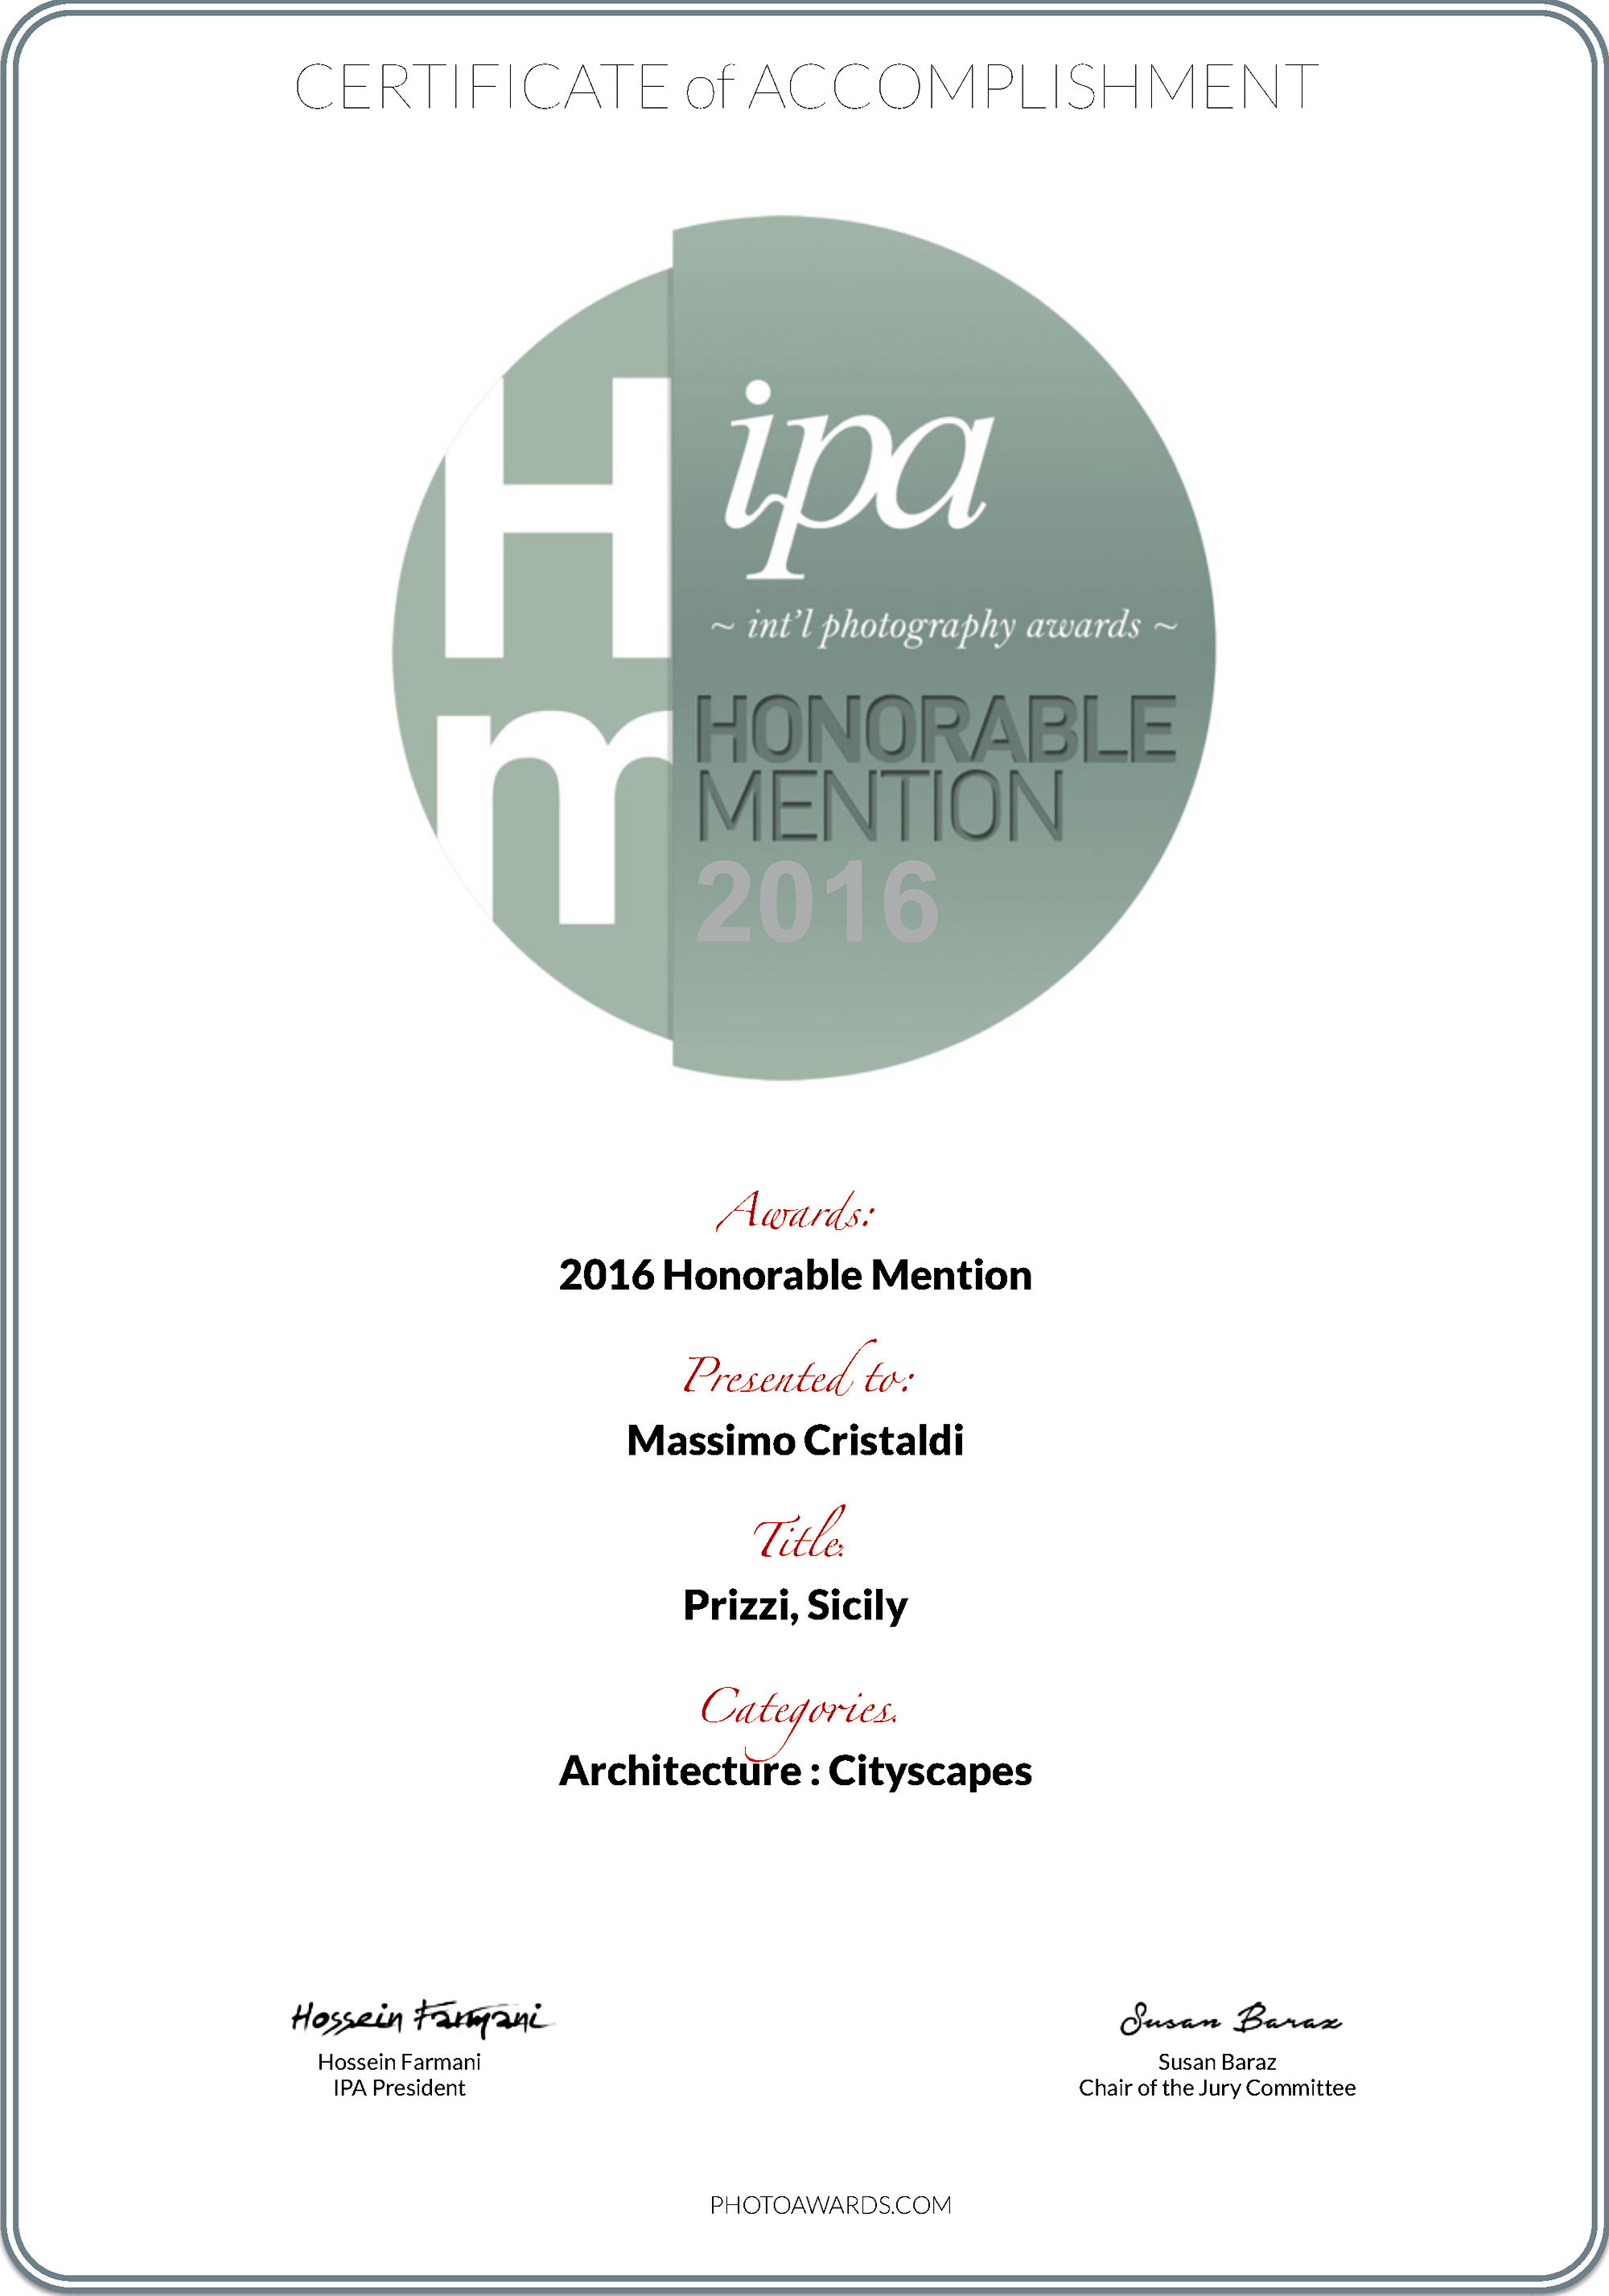 IPA-Honorable-Mention-2016